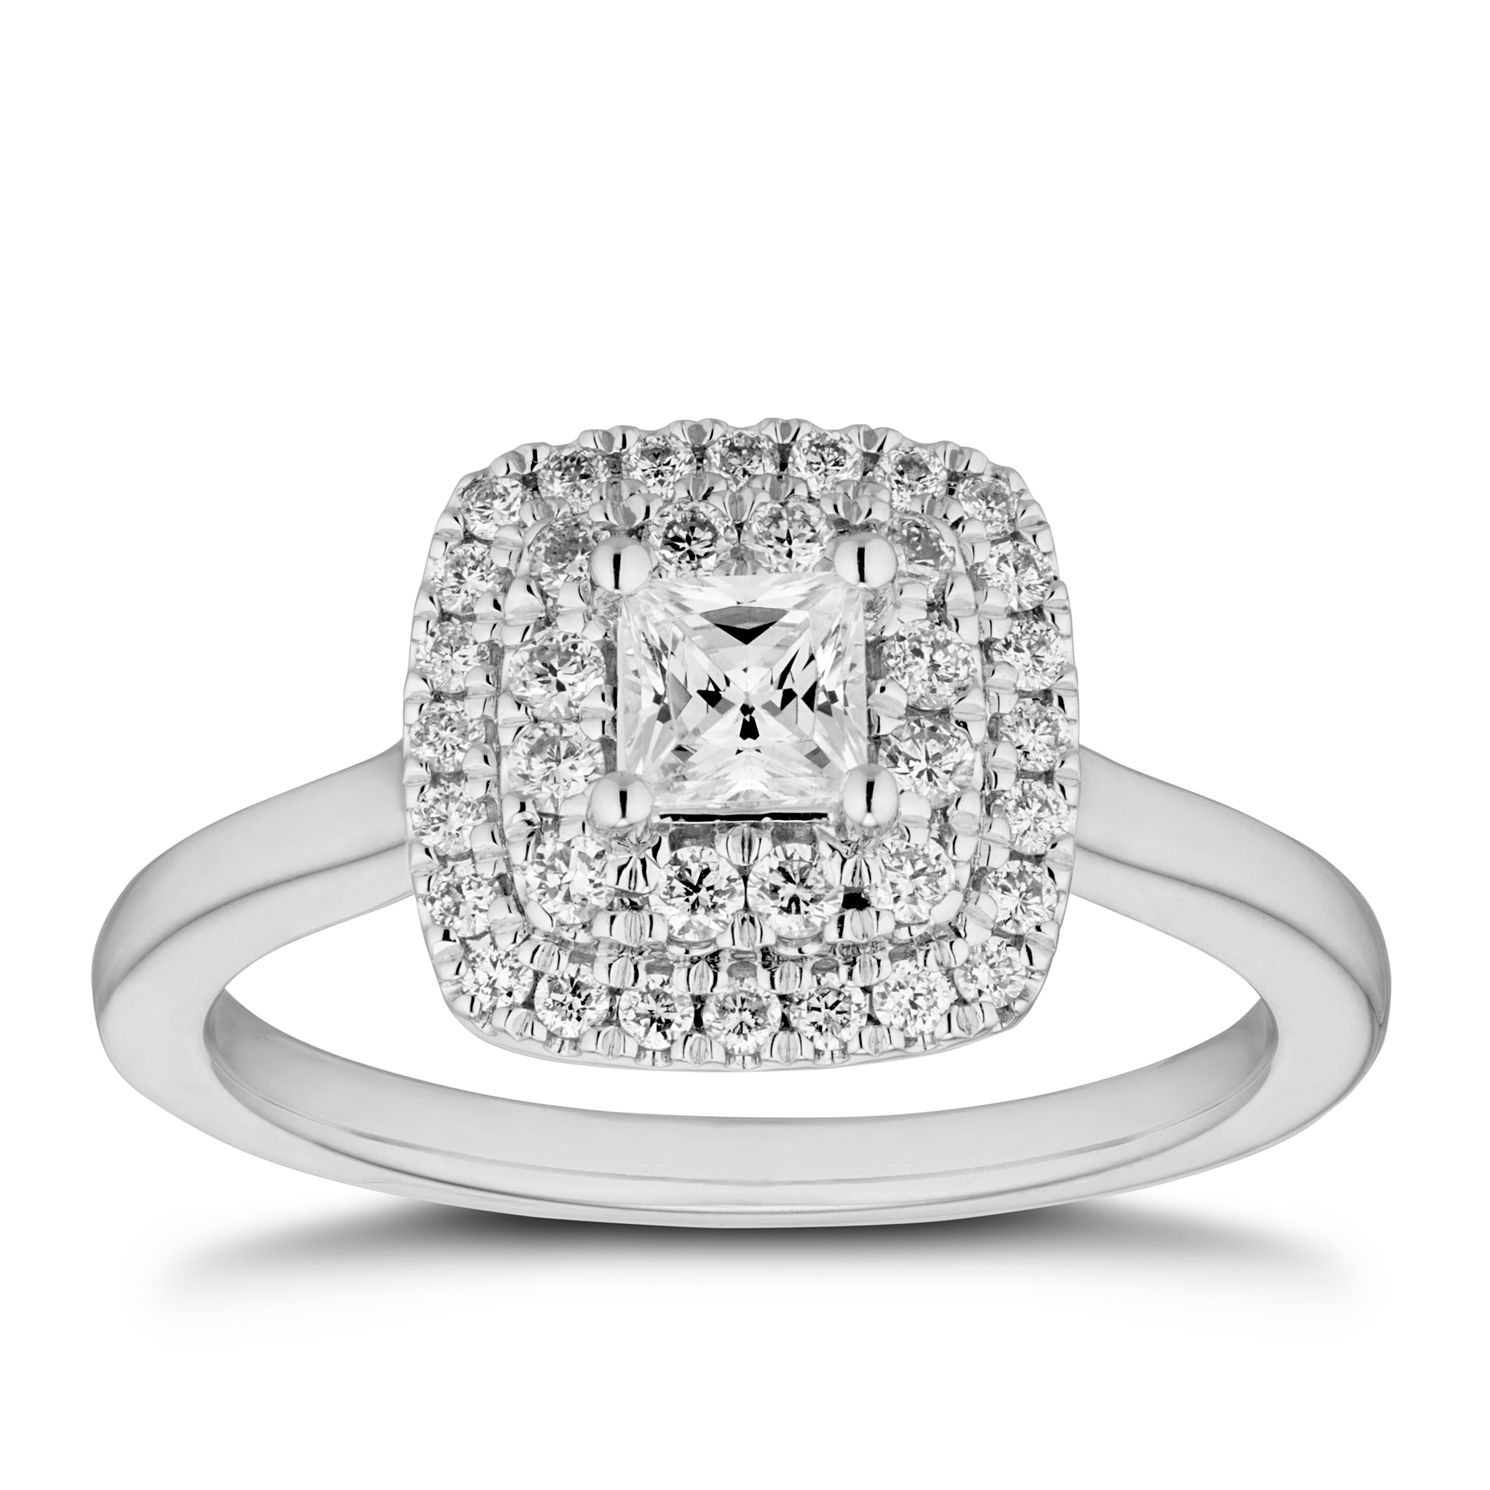 Tolkowsky 18ct White Gold 0.66ct Diamond Double Halo Ring - Product number 5890063